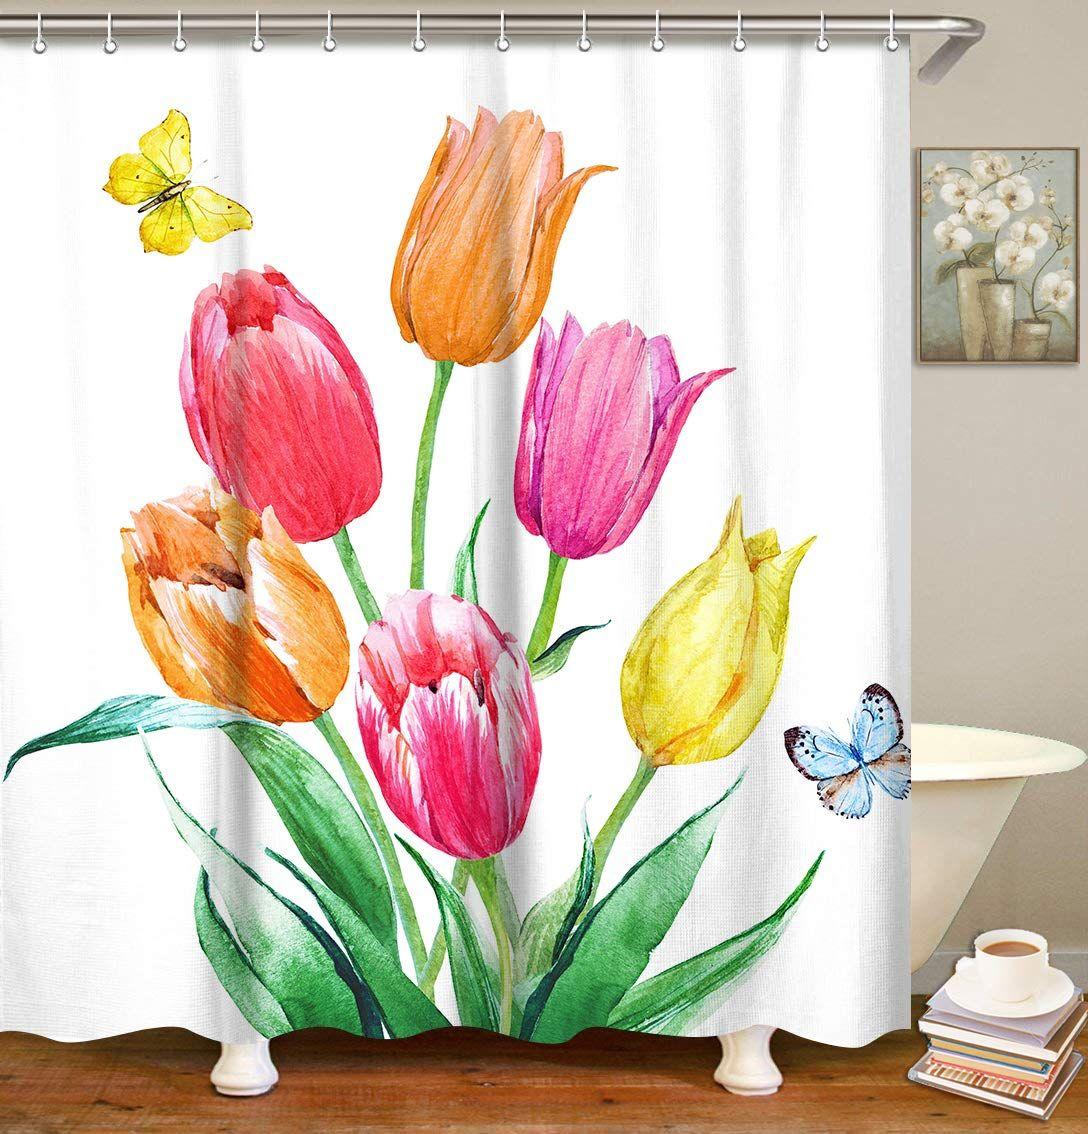 Livilan Tulip Shower Curtain Floral Fabric Bathroom Curtain Set